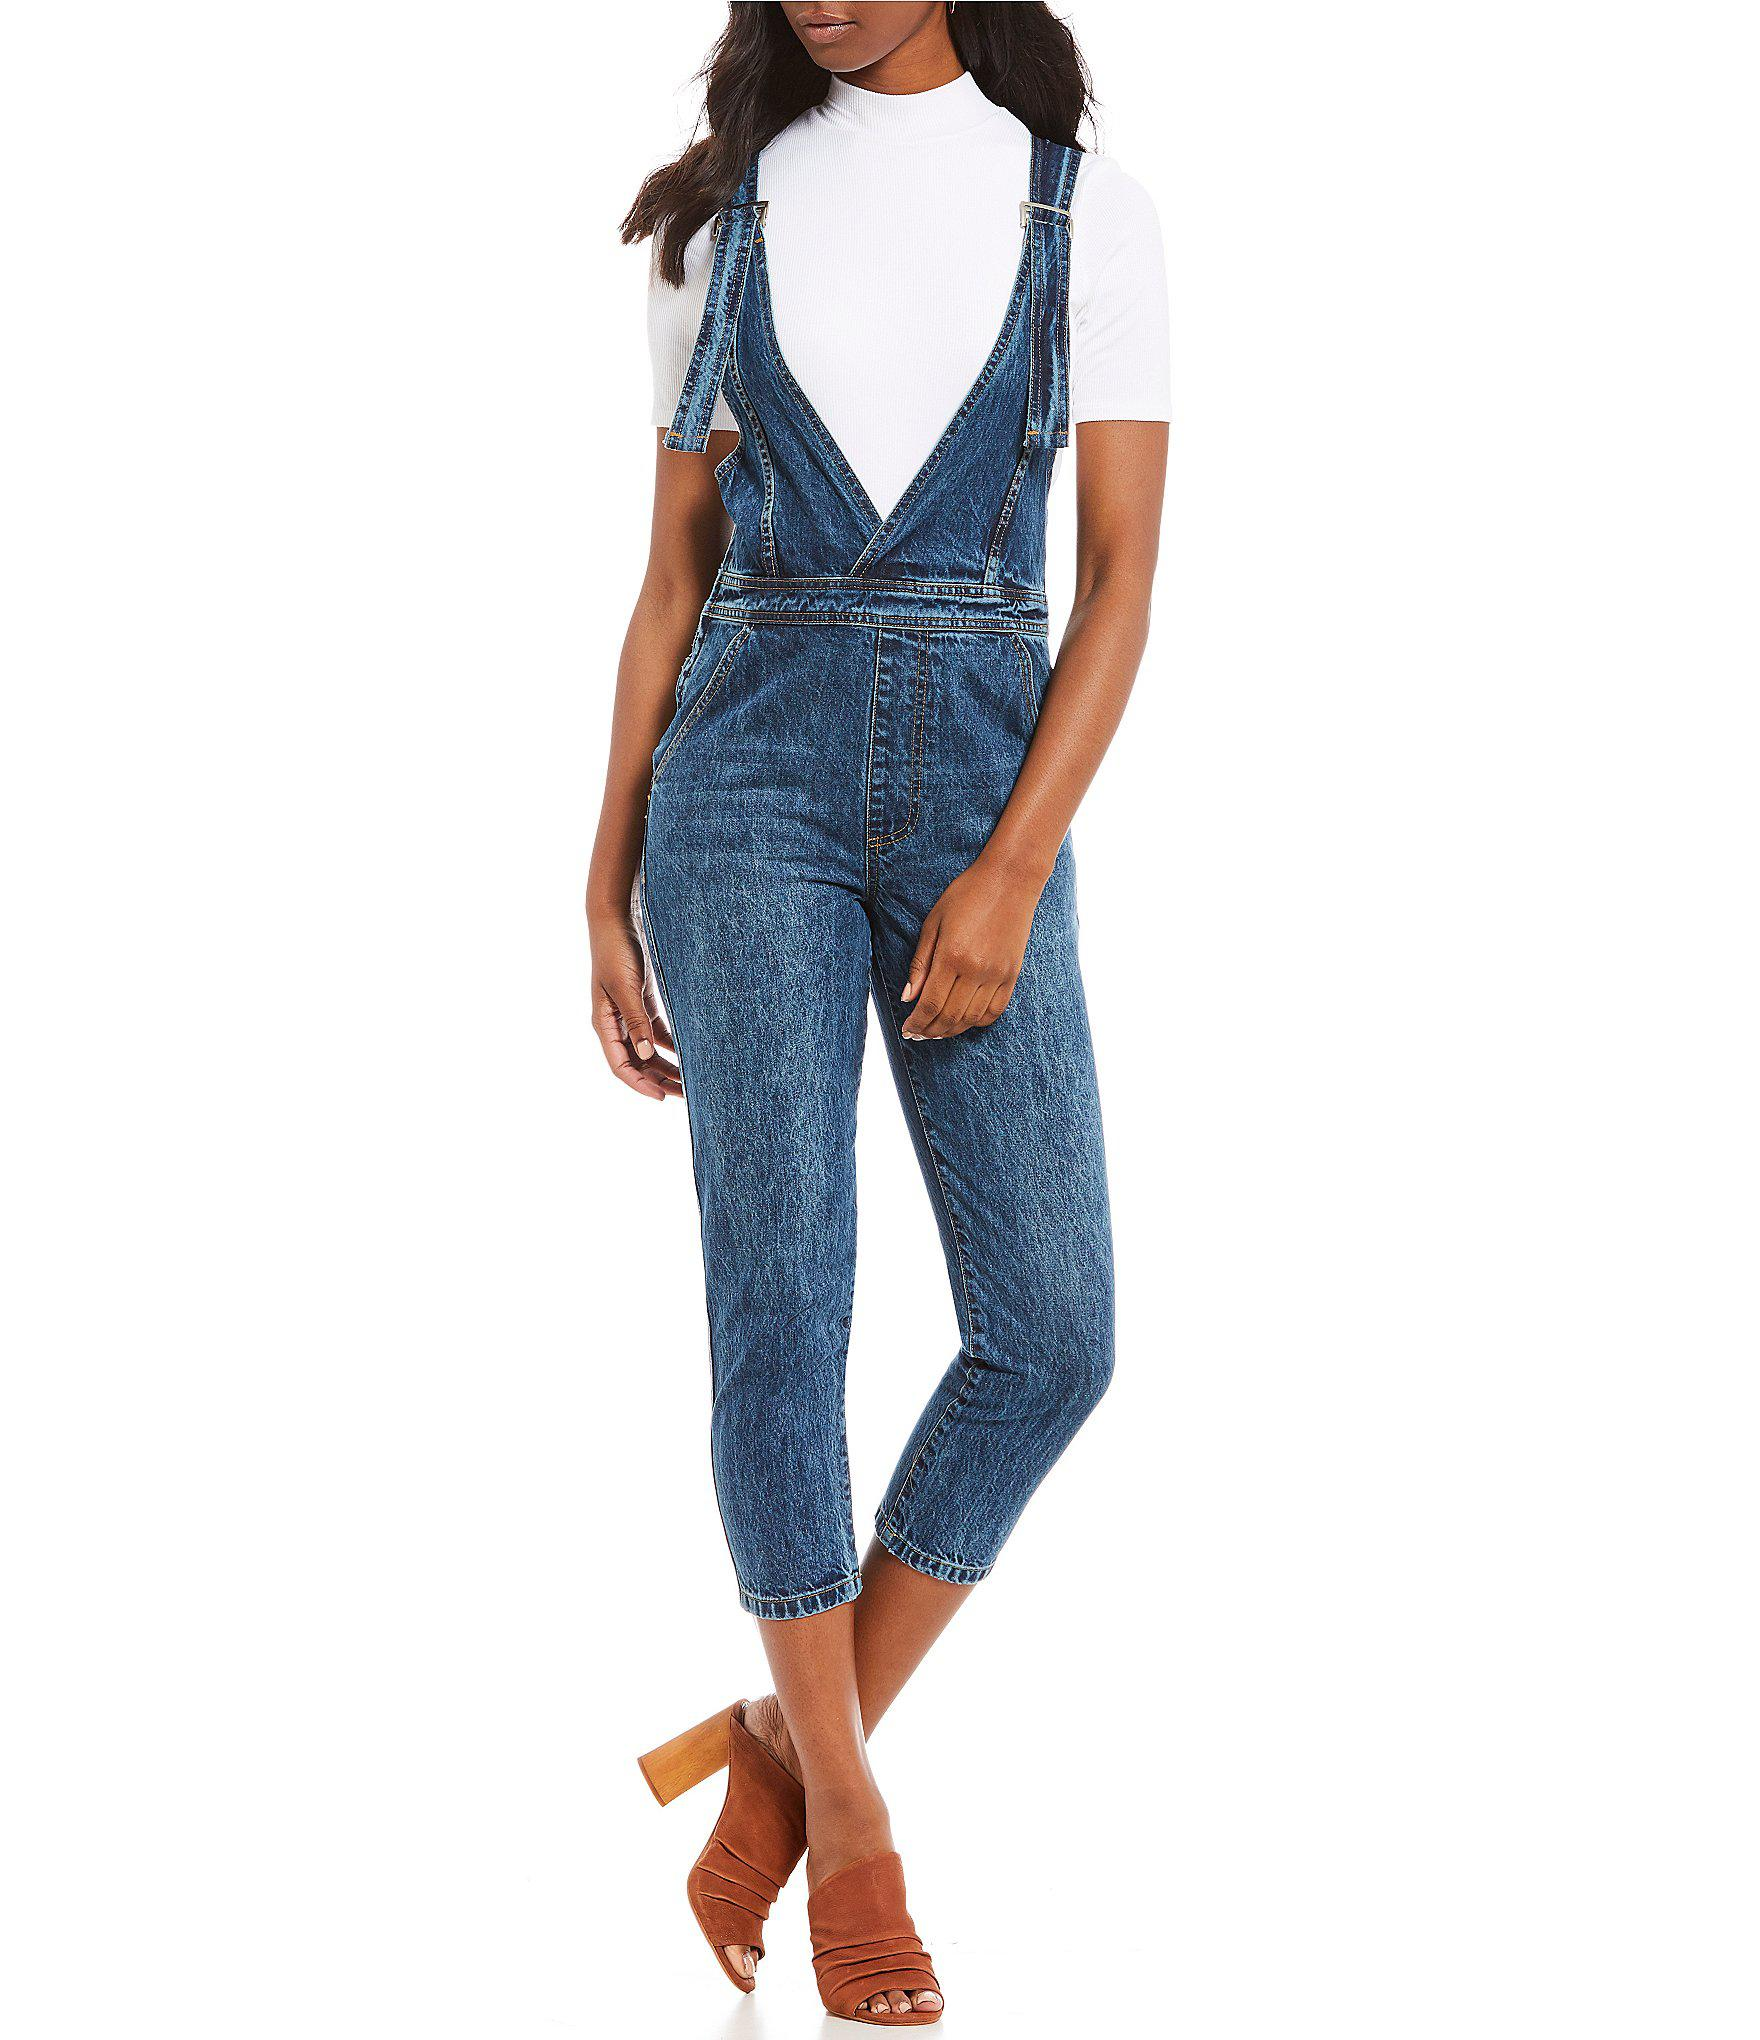 ea810a1367cb Lyst - Gianni Bini Linds Western Inspired Crop Denim Overalls in Blue